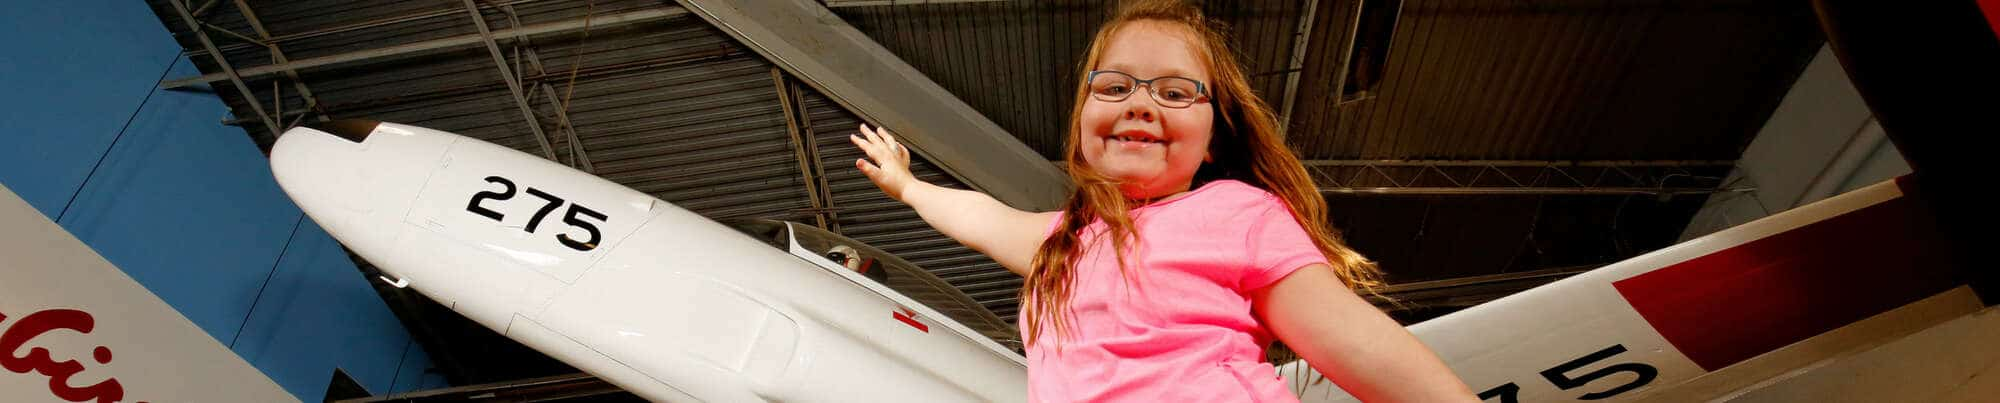 Girl with arms outstretched in front of a Snowbird's jet on display in Moose Jaw.